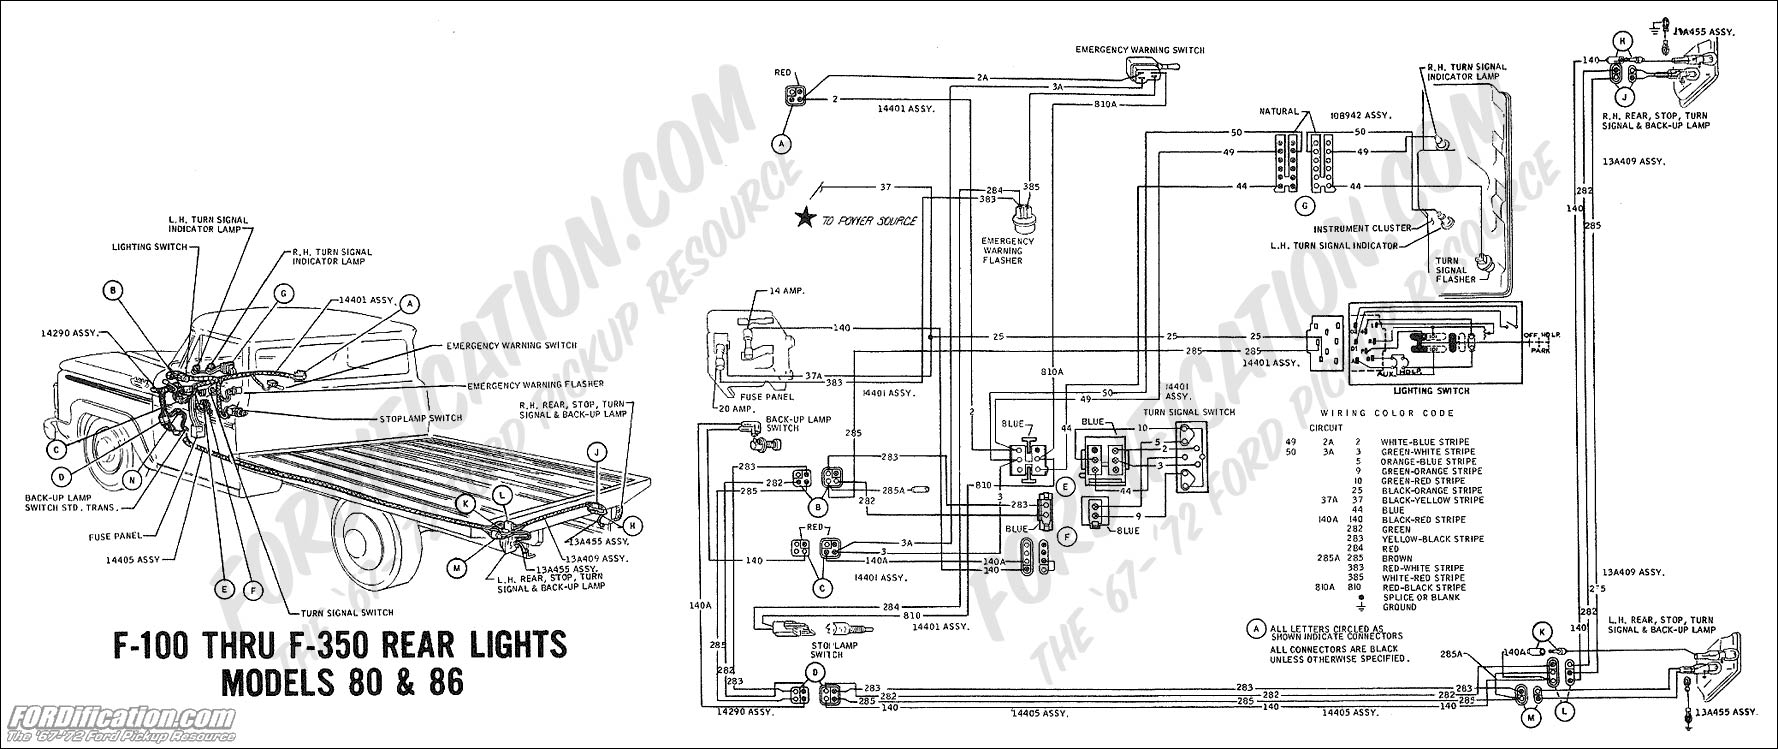 Ford Truck Technical Drawings And Schematics Section H Wiring 2012 Camaro Tail Light Diagram 1969 F 100 Thru 350 Rear Lights Models 80 86